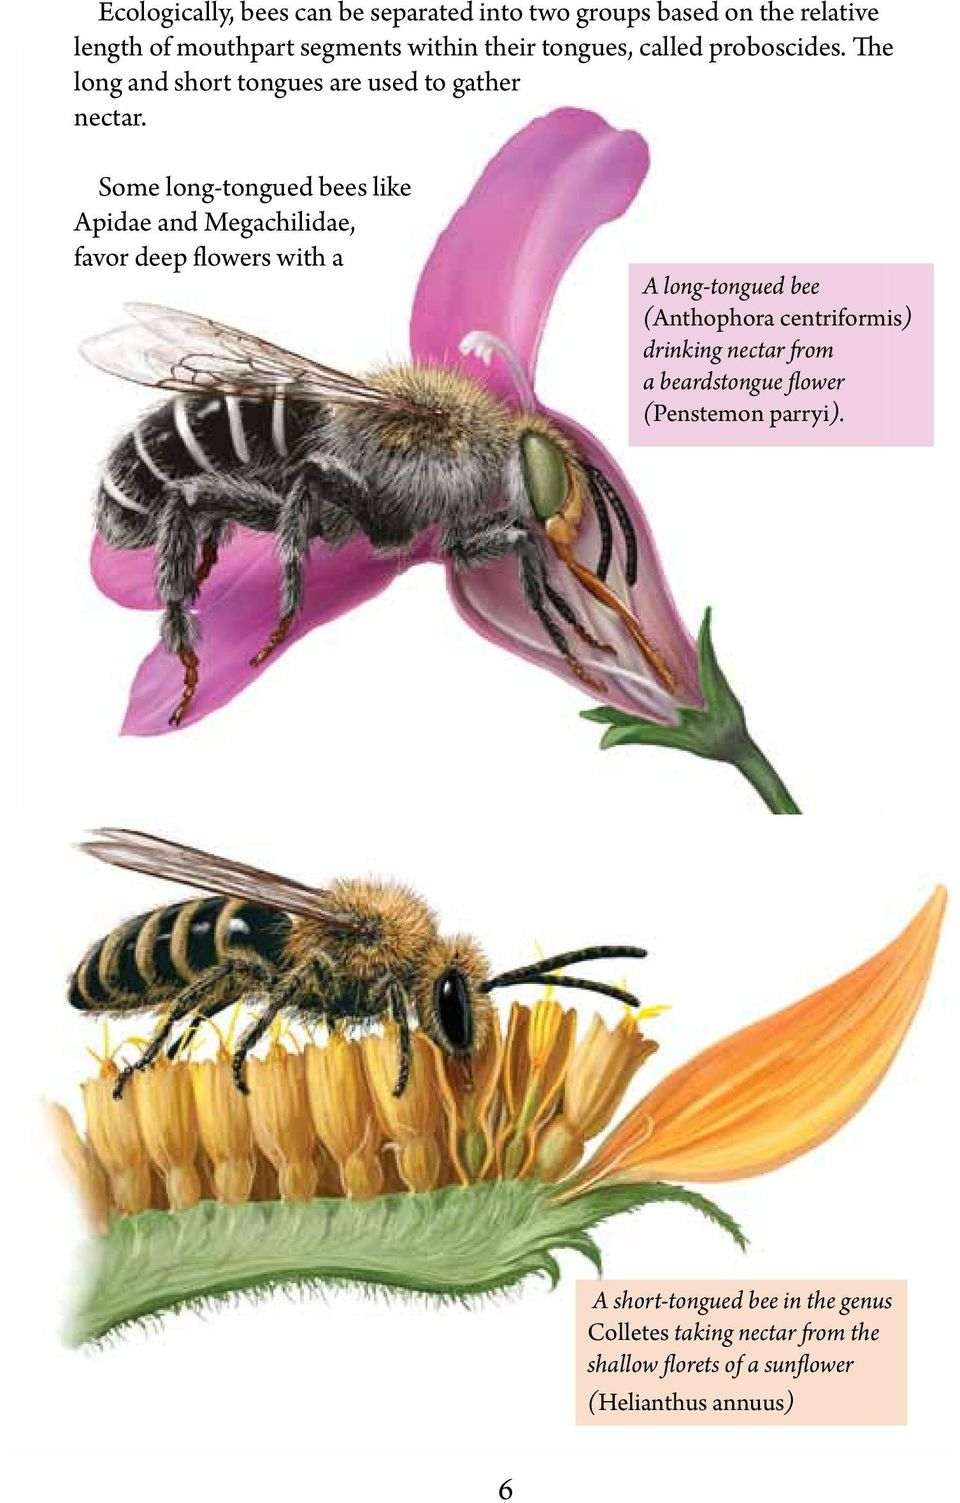 Some long-tongued bees like Apidae and Megachilidae, favor deep flowers with a A long-tongued bee (Anthophora centriformis)